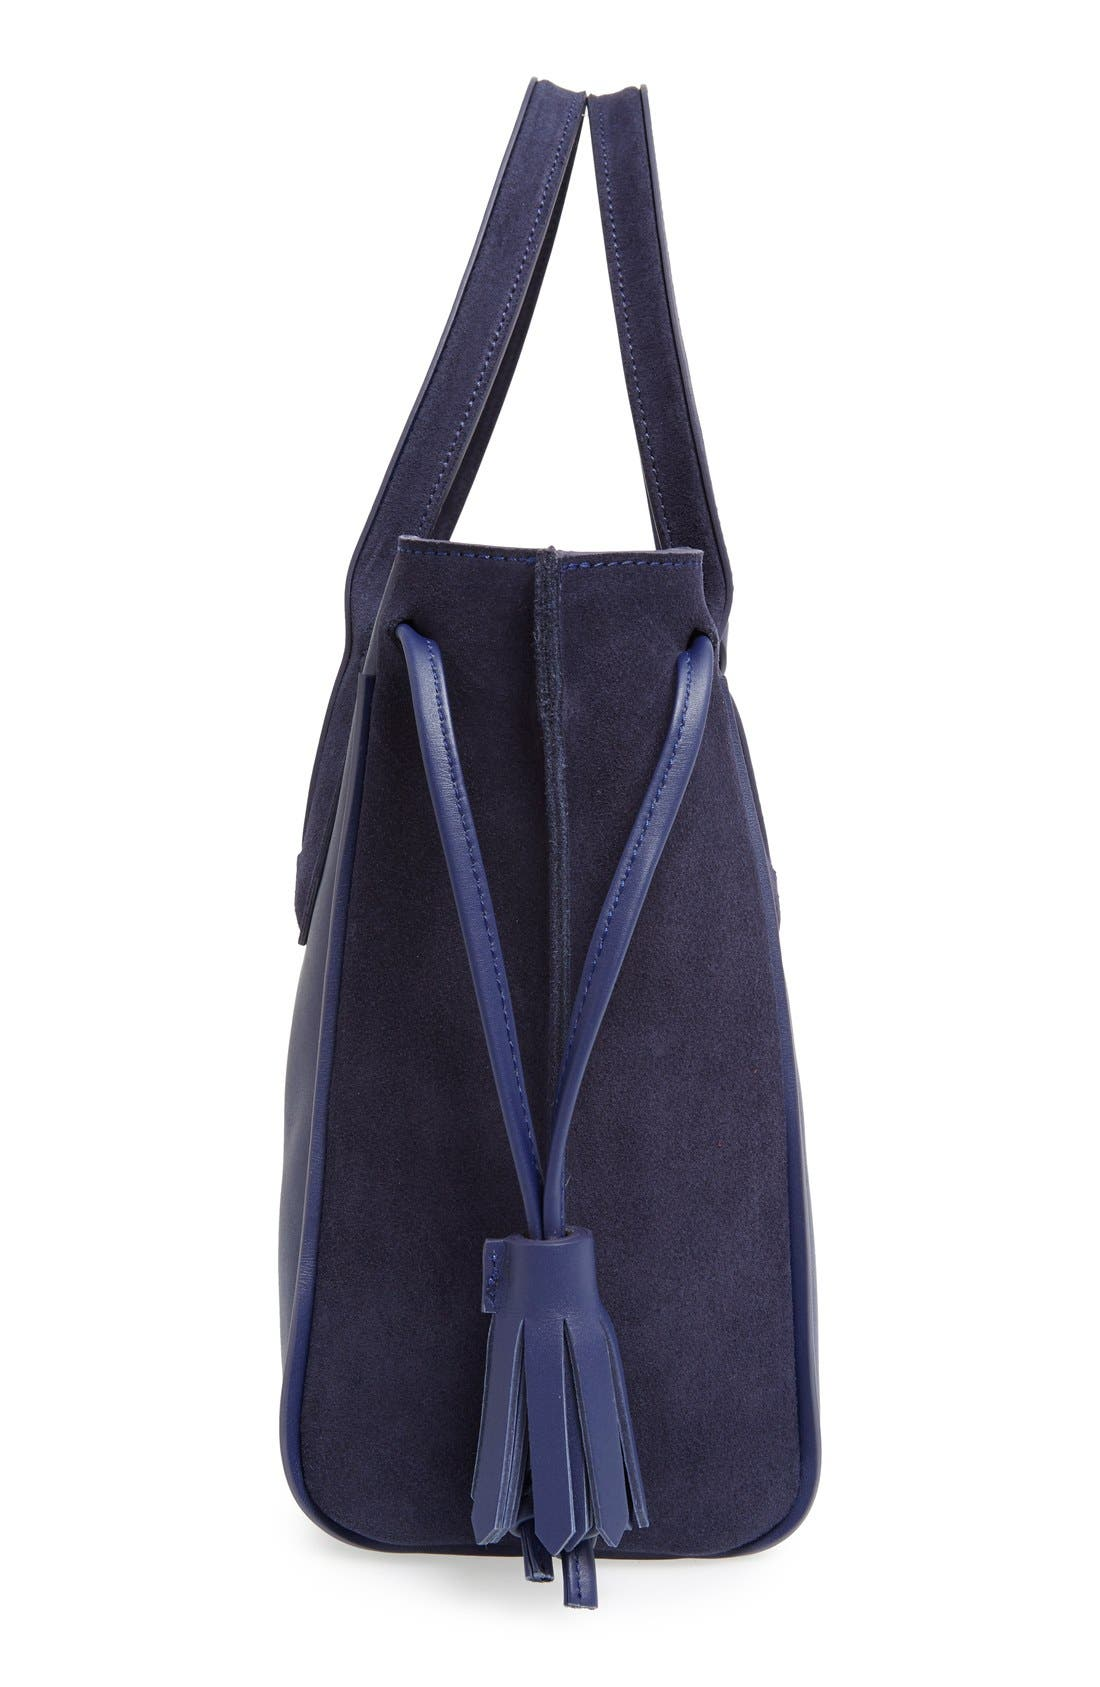 'Small Penelope Fantasie' Leather Tote,                             Alternate thumbnail 10, color,                             400